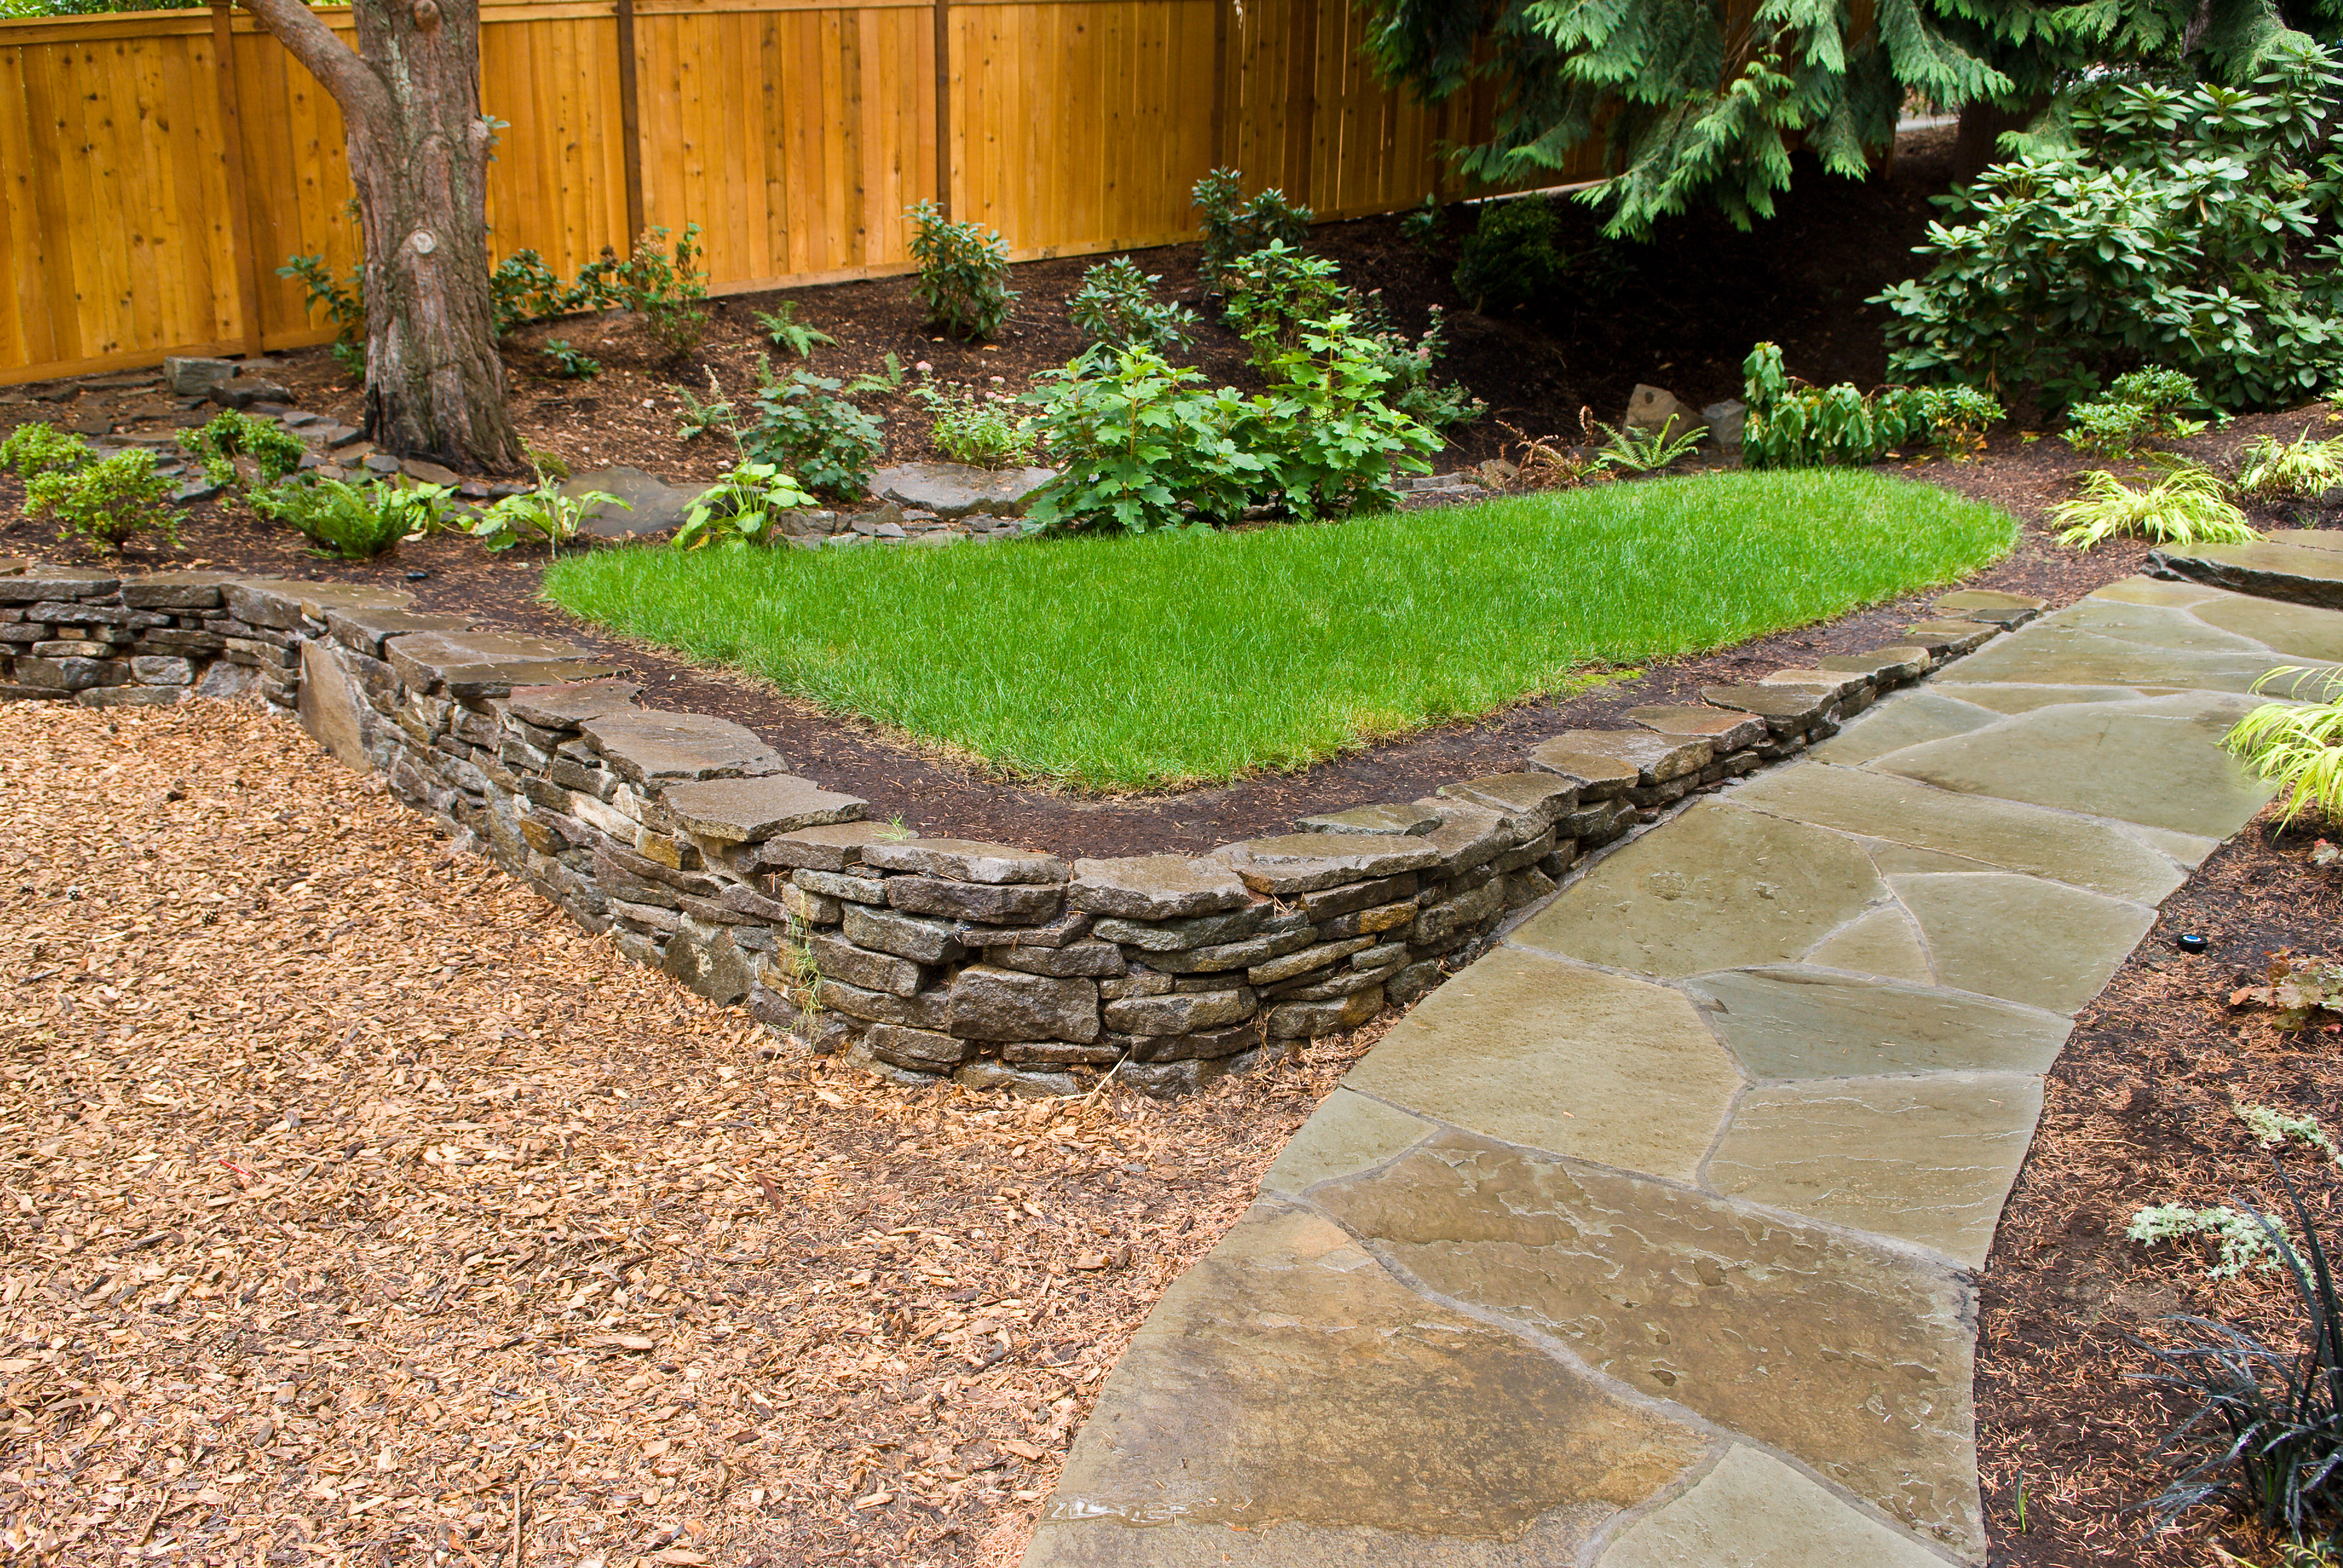 Moss rock landscaping portland or 97223 angie s list